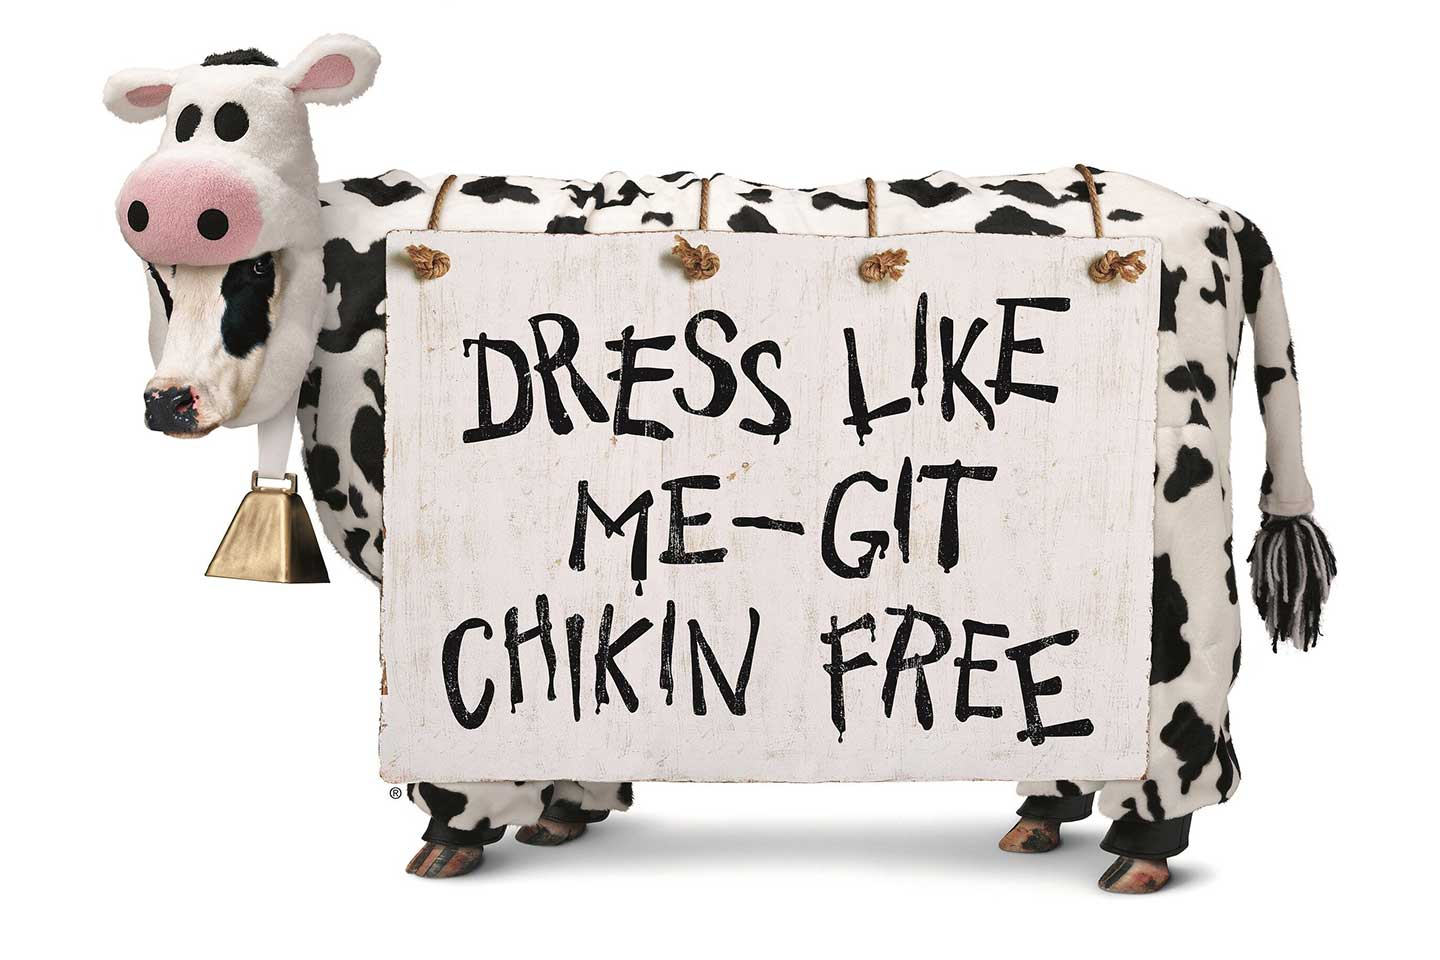 Free Chick-fil-A Entree Dressed as Cow Appreciation Day